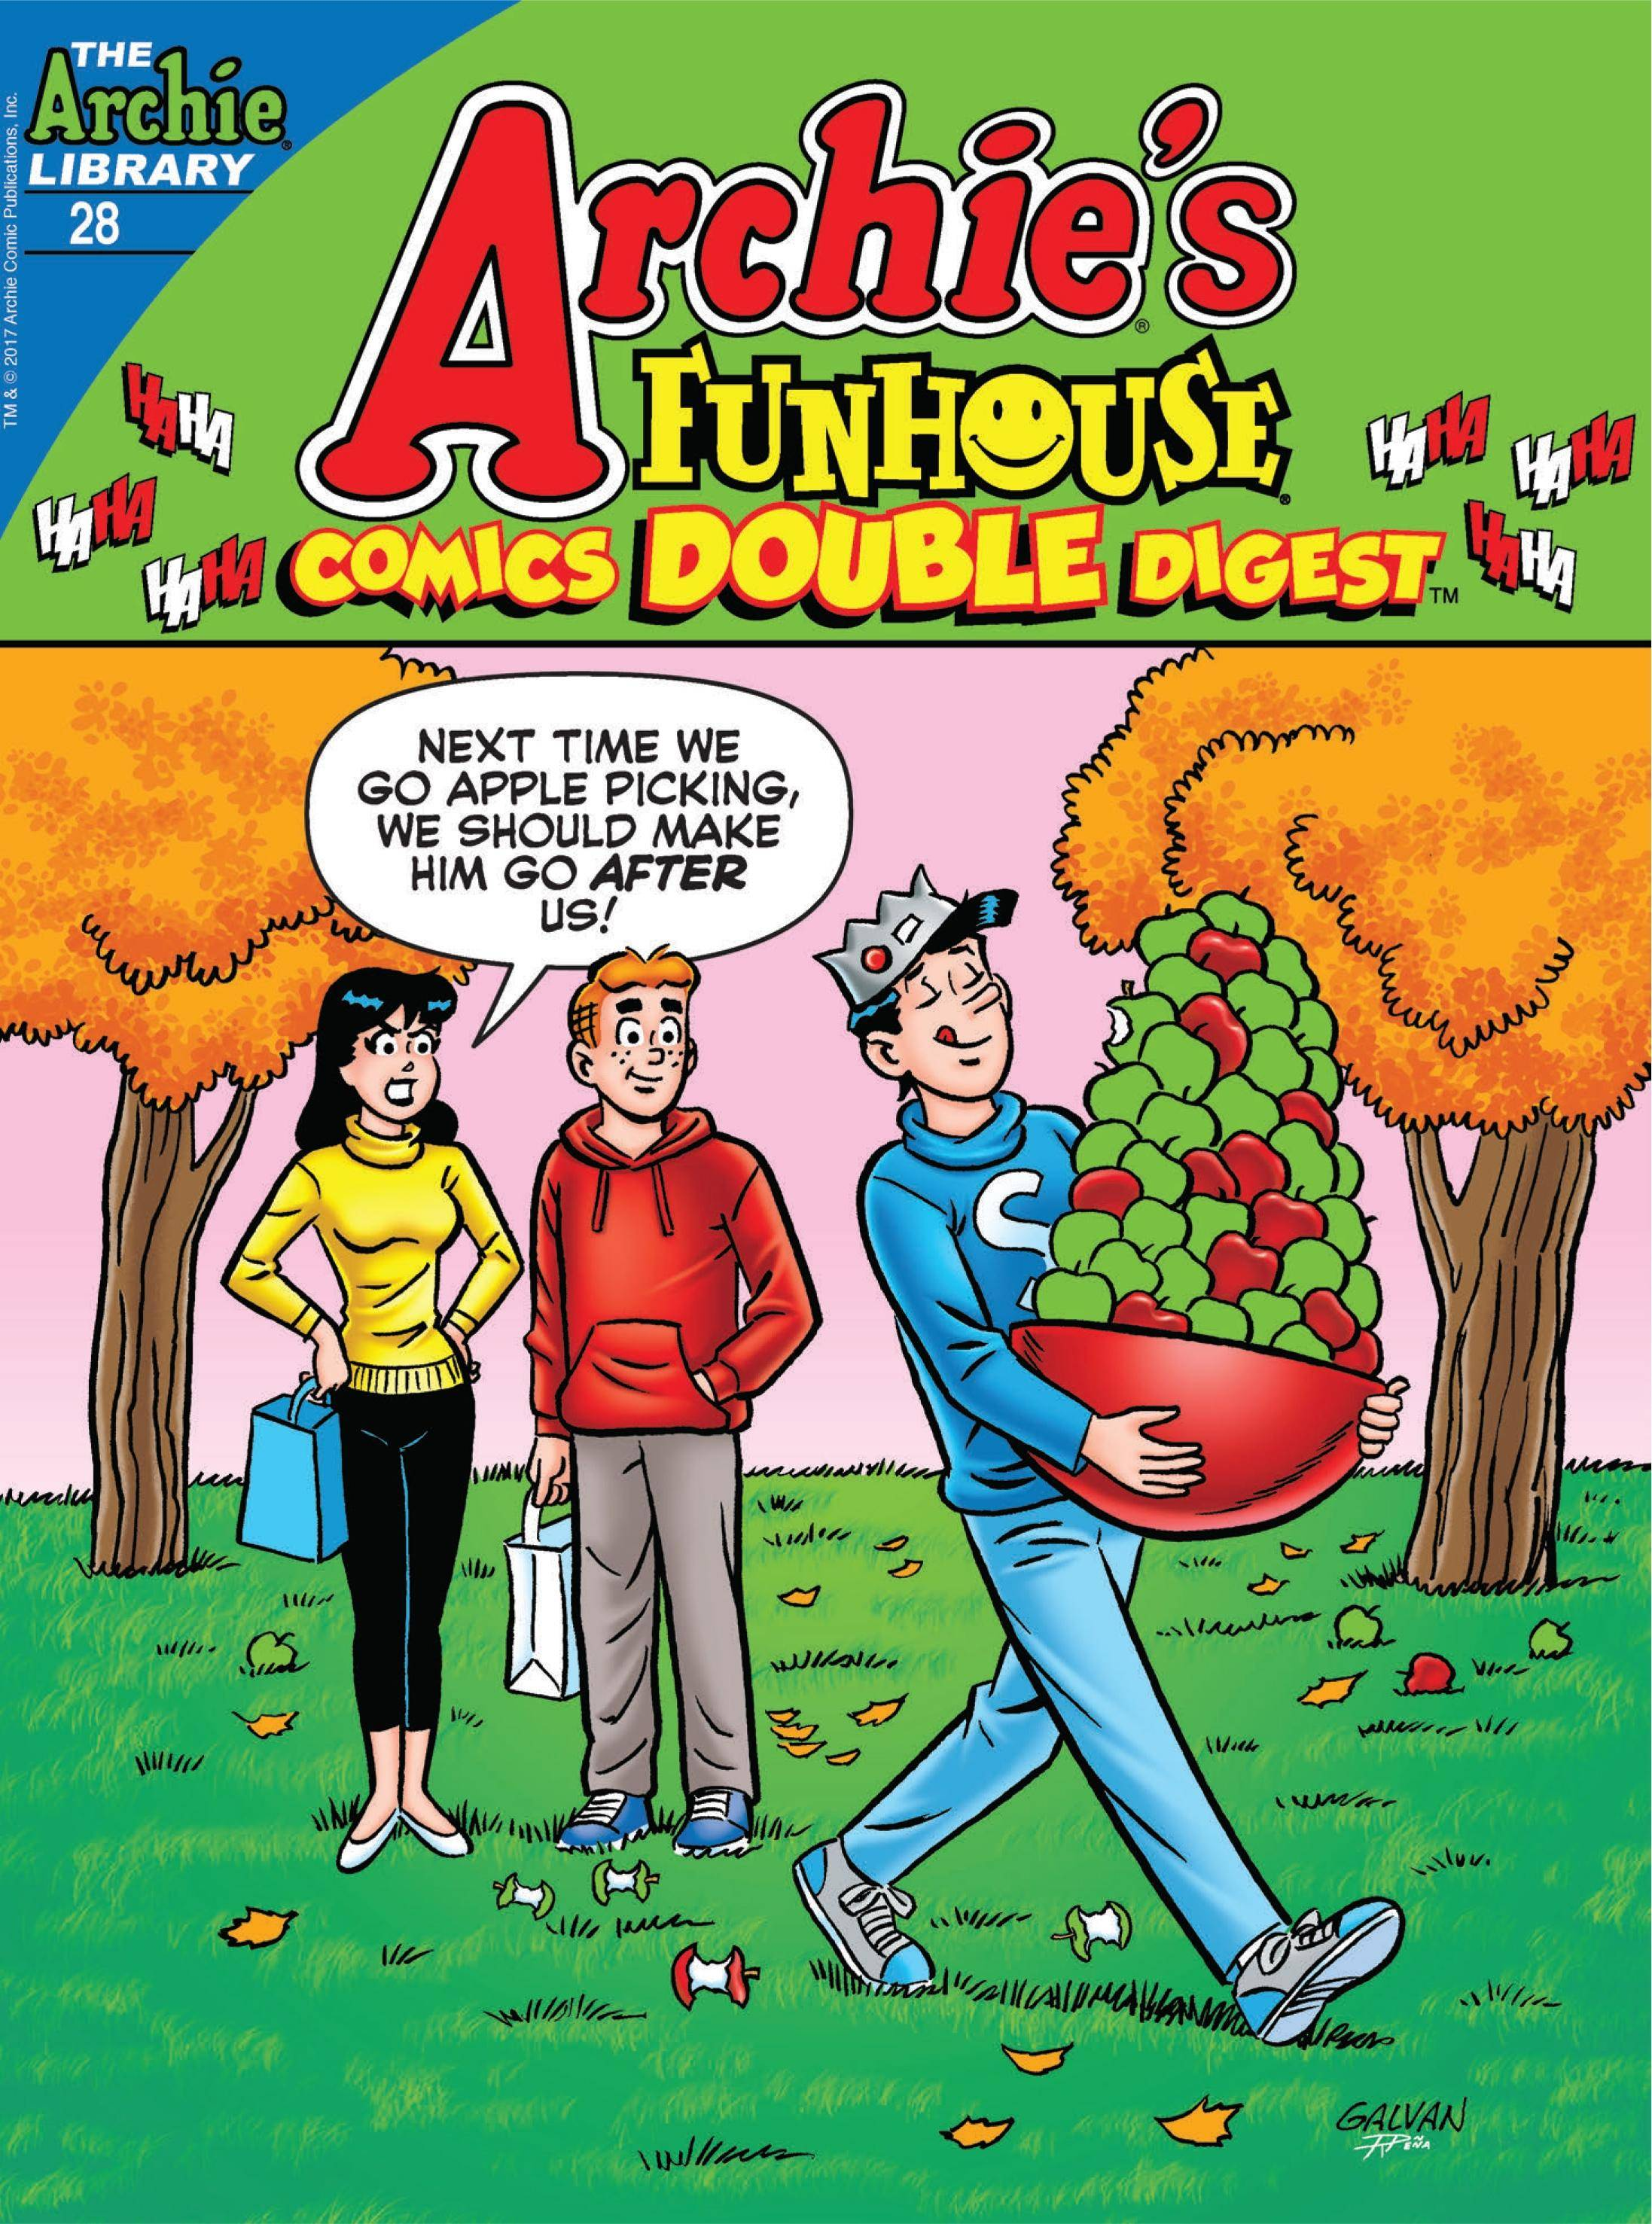 Archies.Funhouse.Comics.Double.Digest.028.2017.Forsythe-DCP